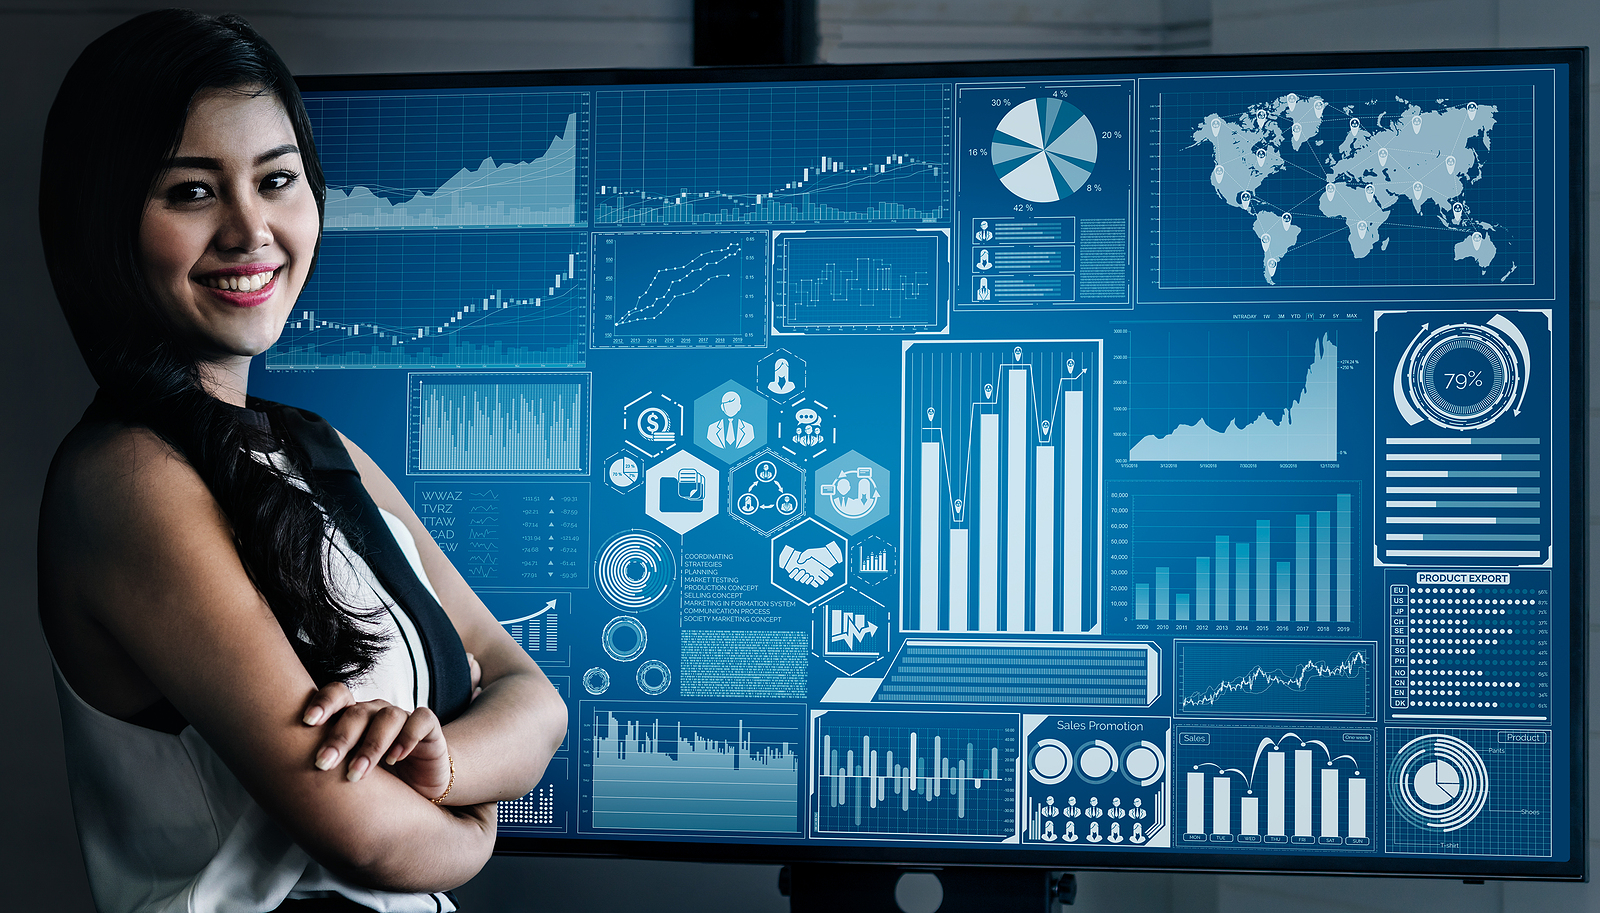 7 Ways a Data Scientist Can Add Value to a Business